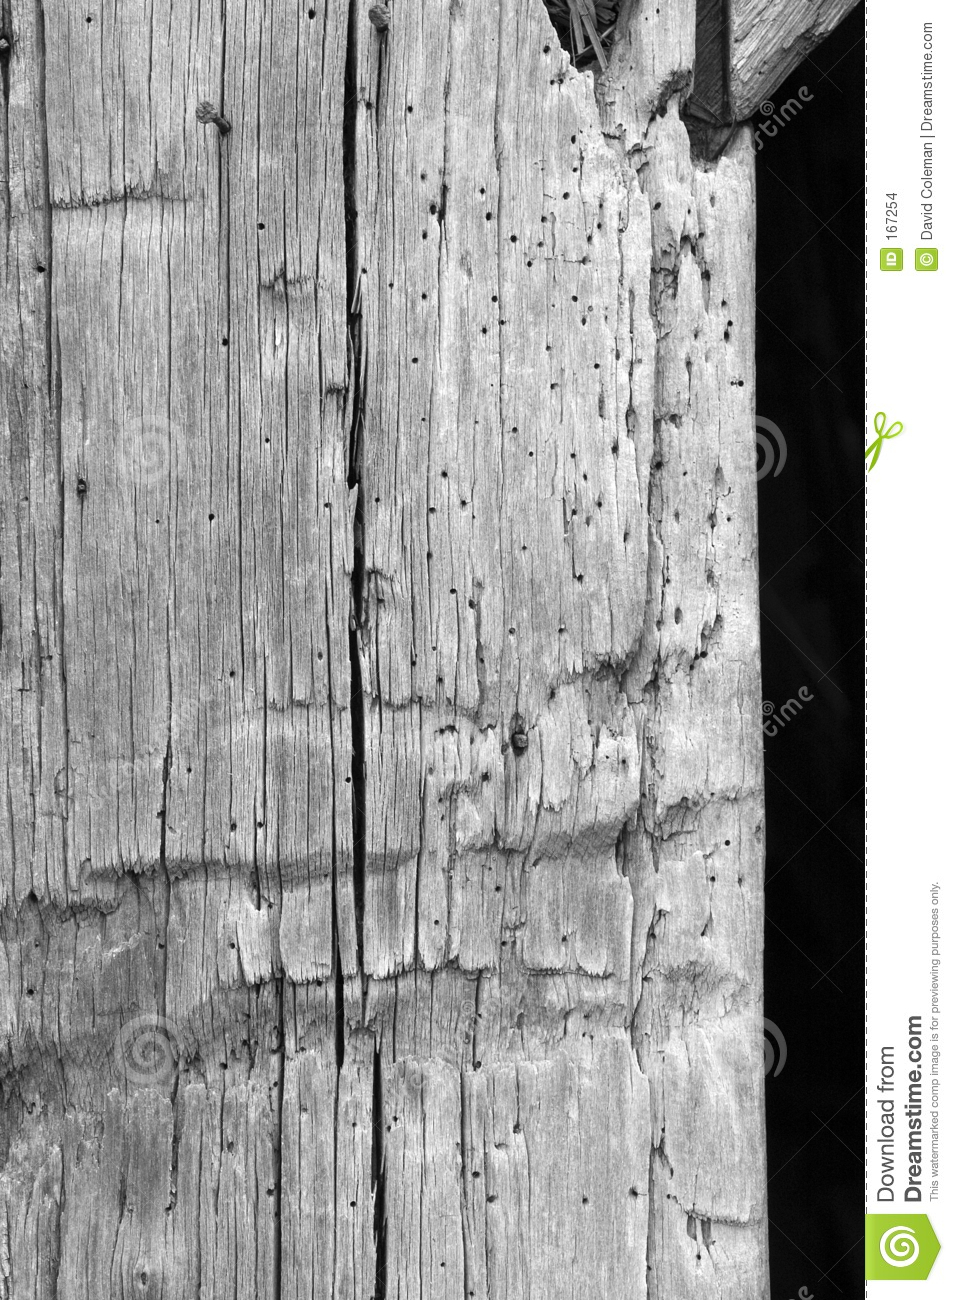 Board texture in black and white